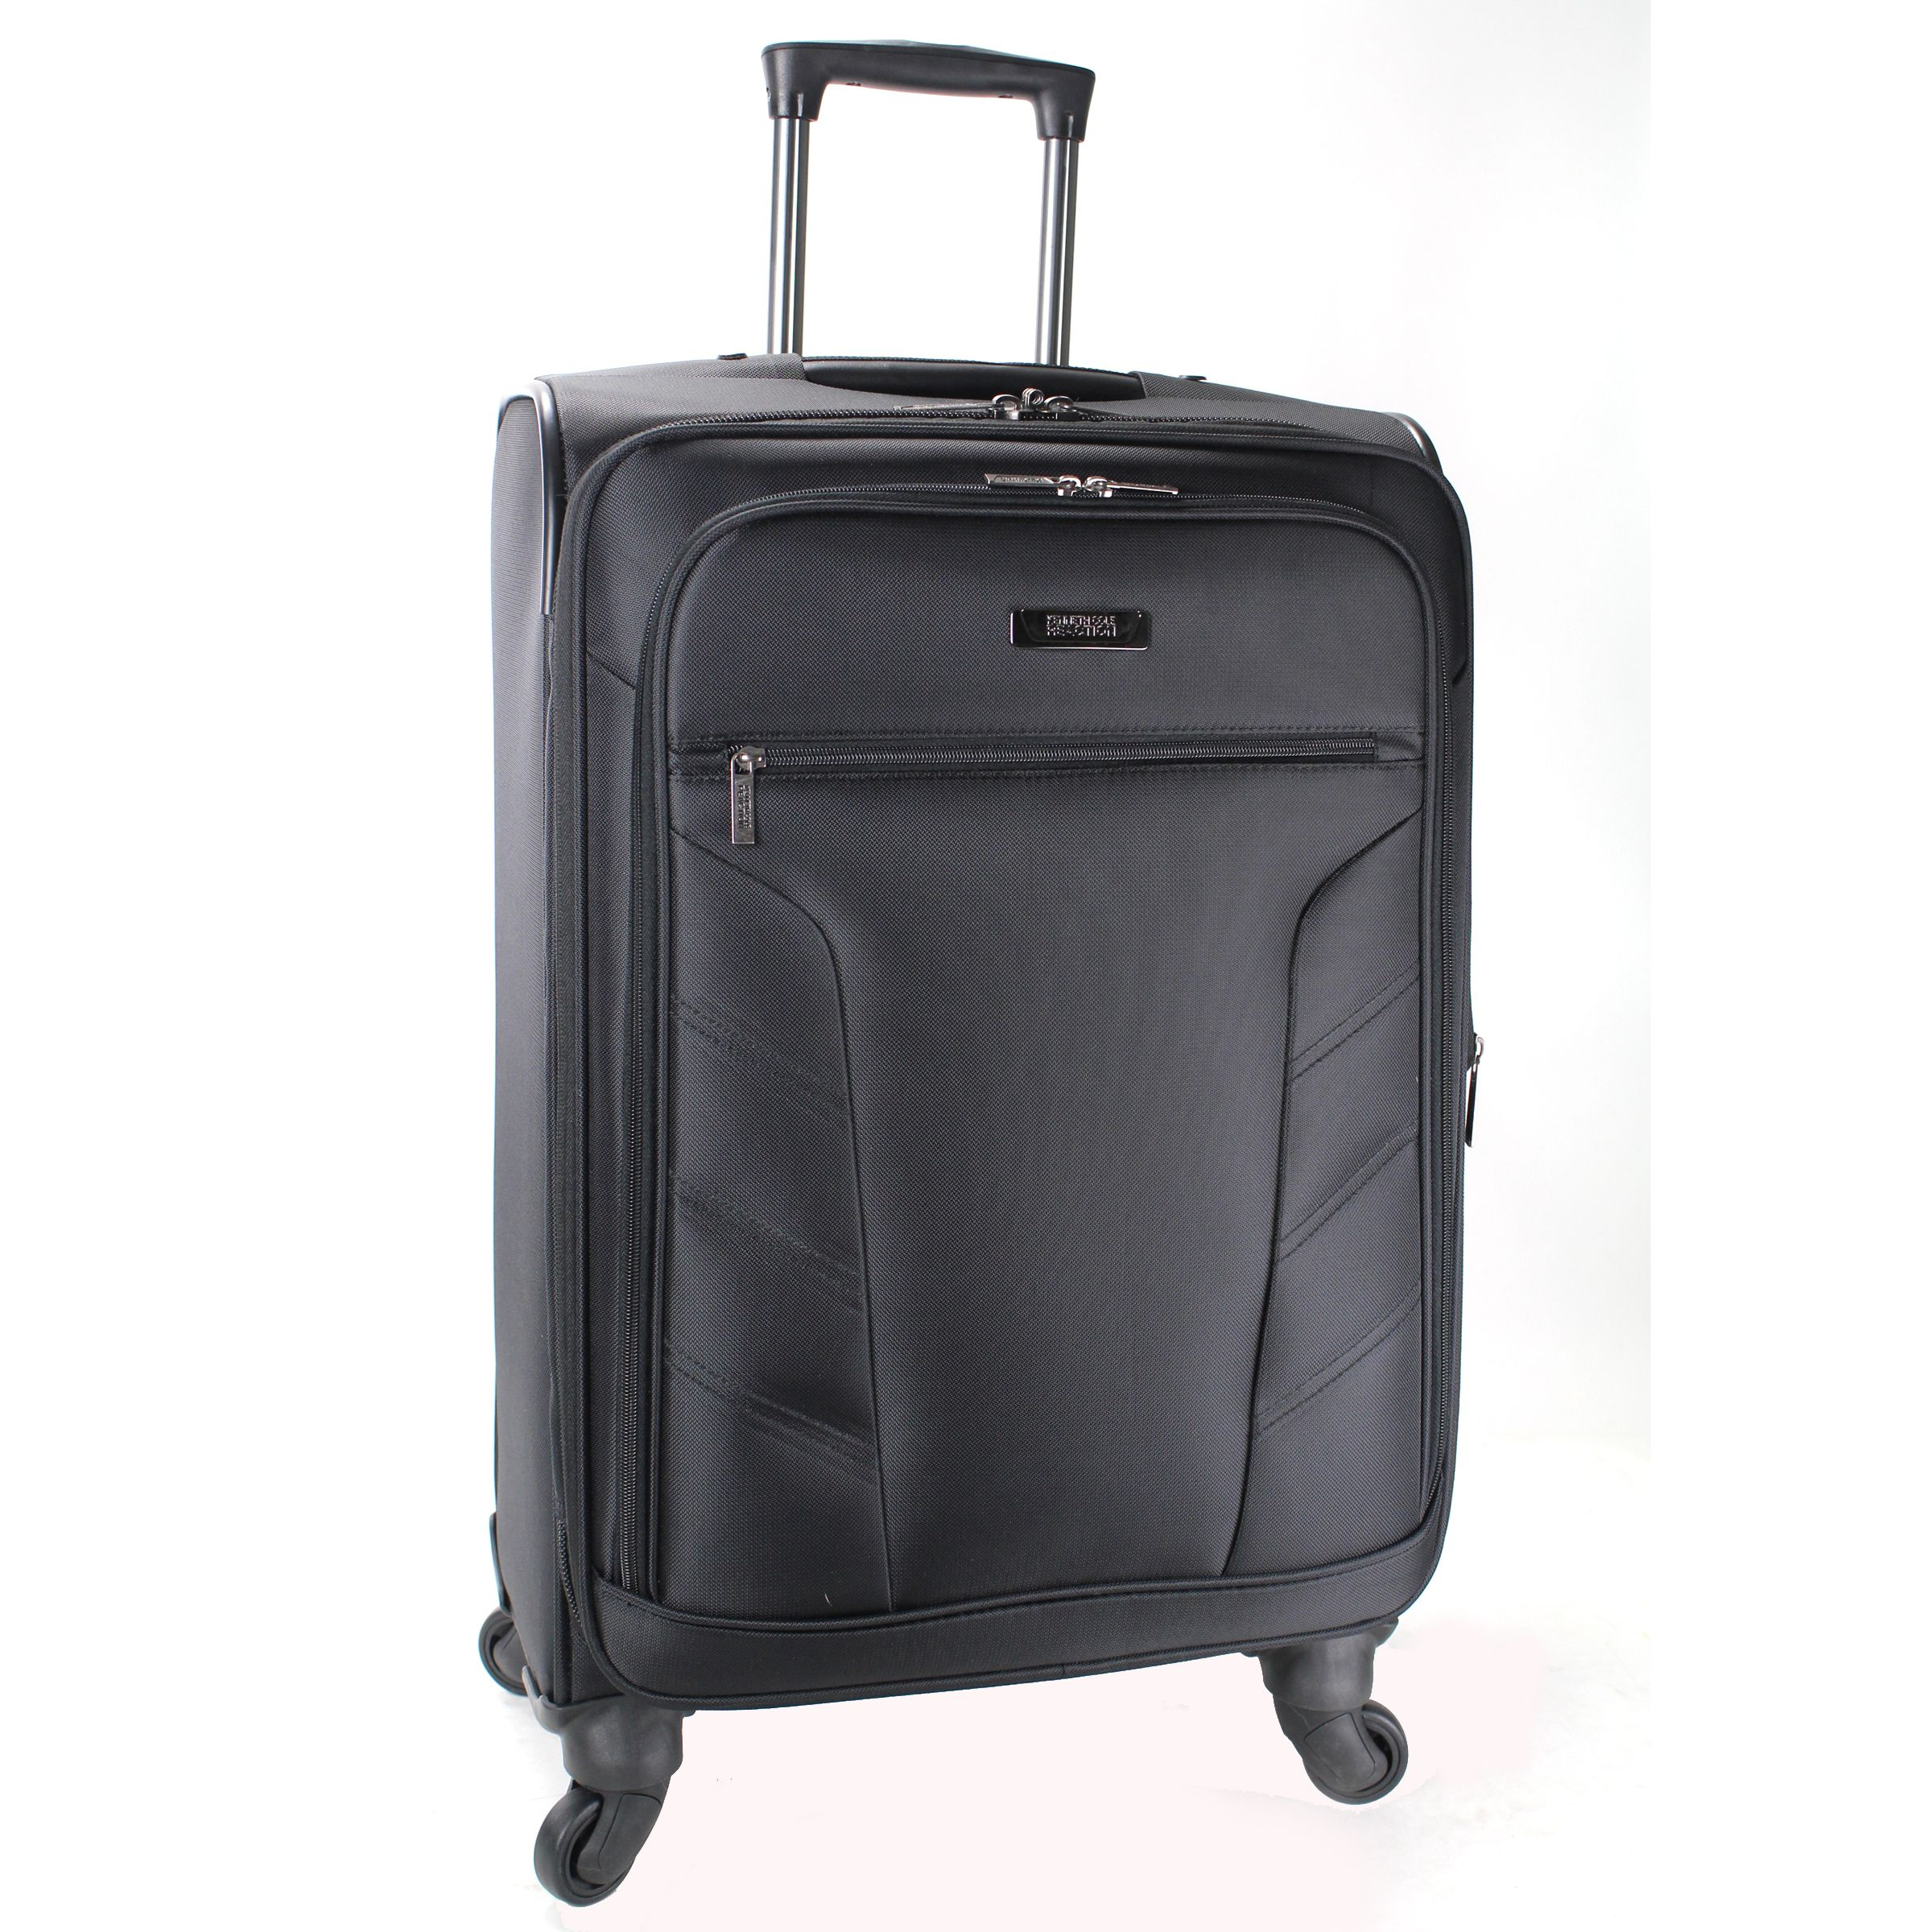 Flying high 4 wheel medium suitcase